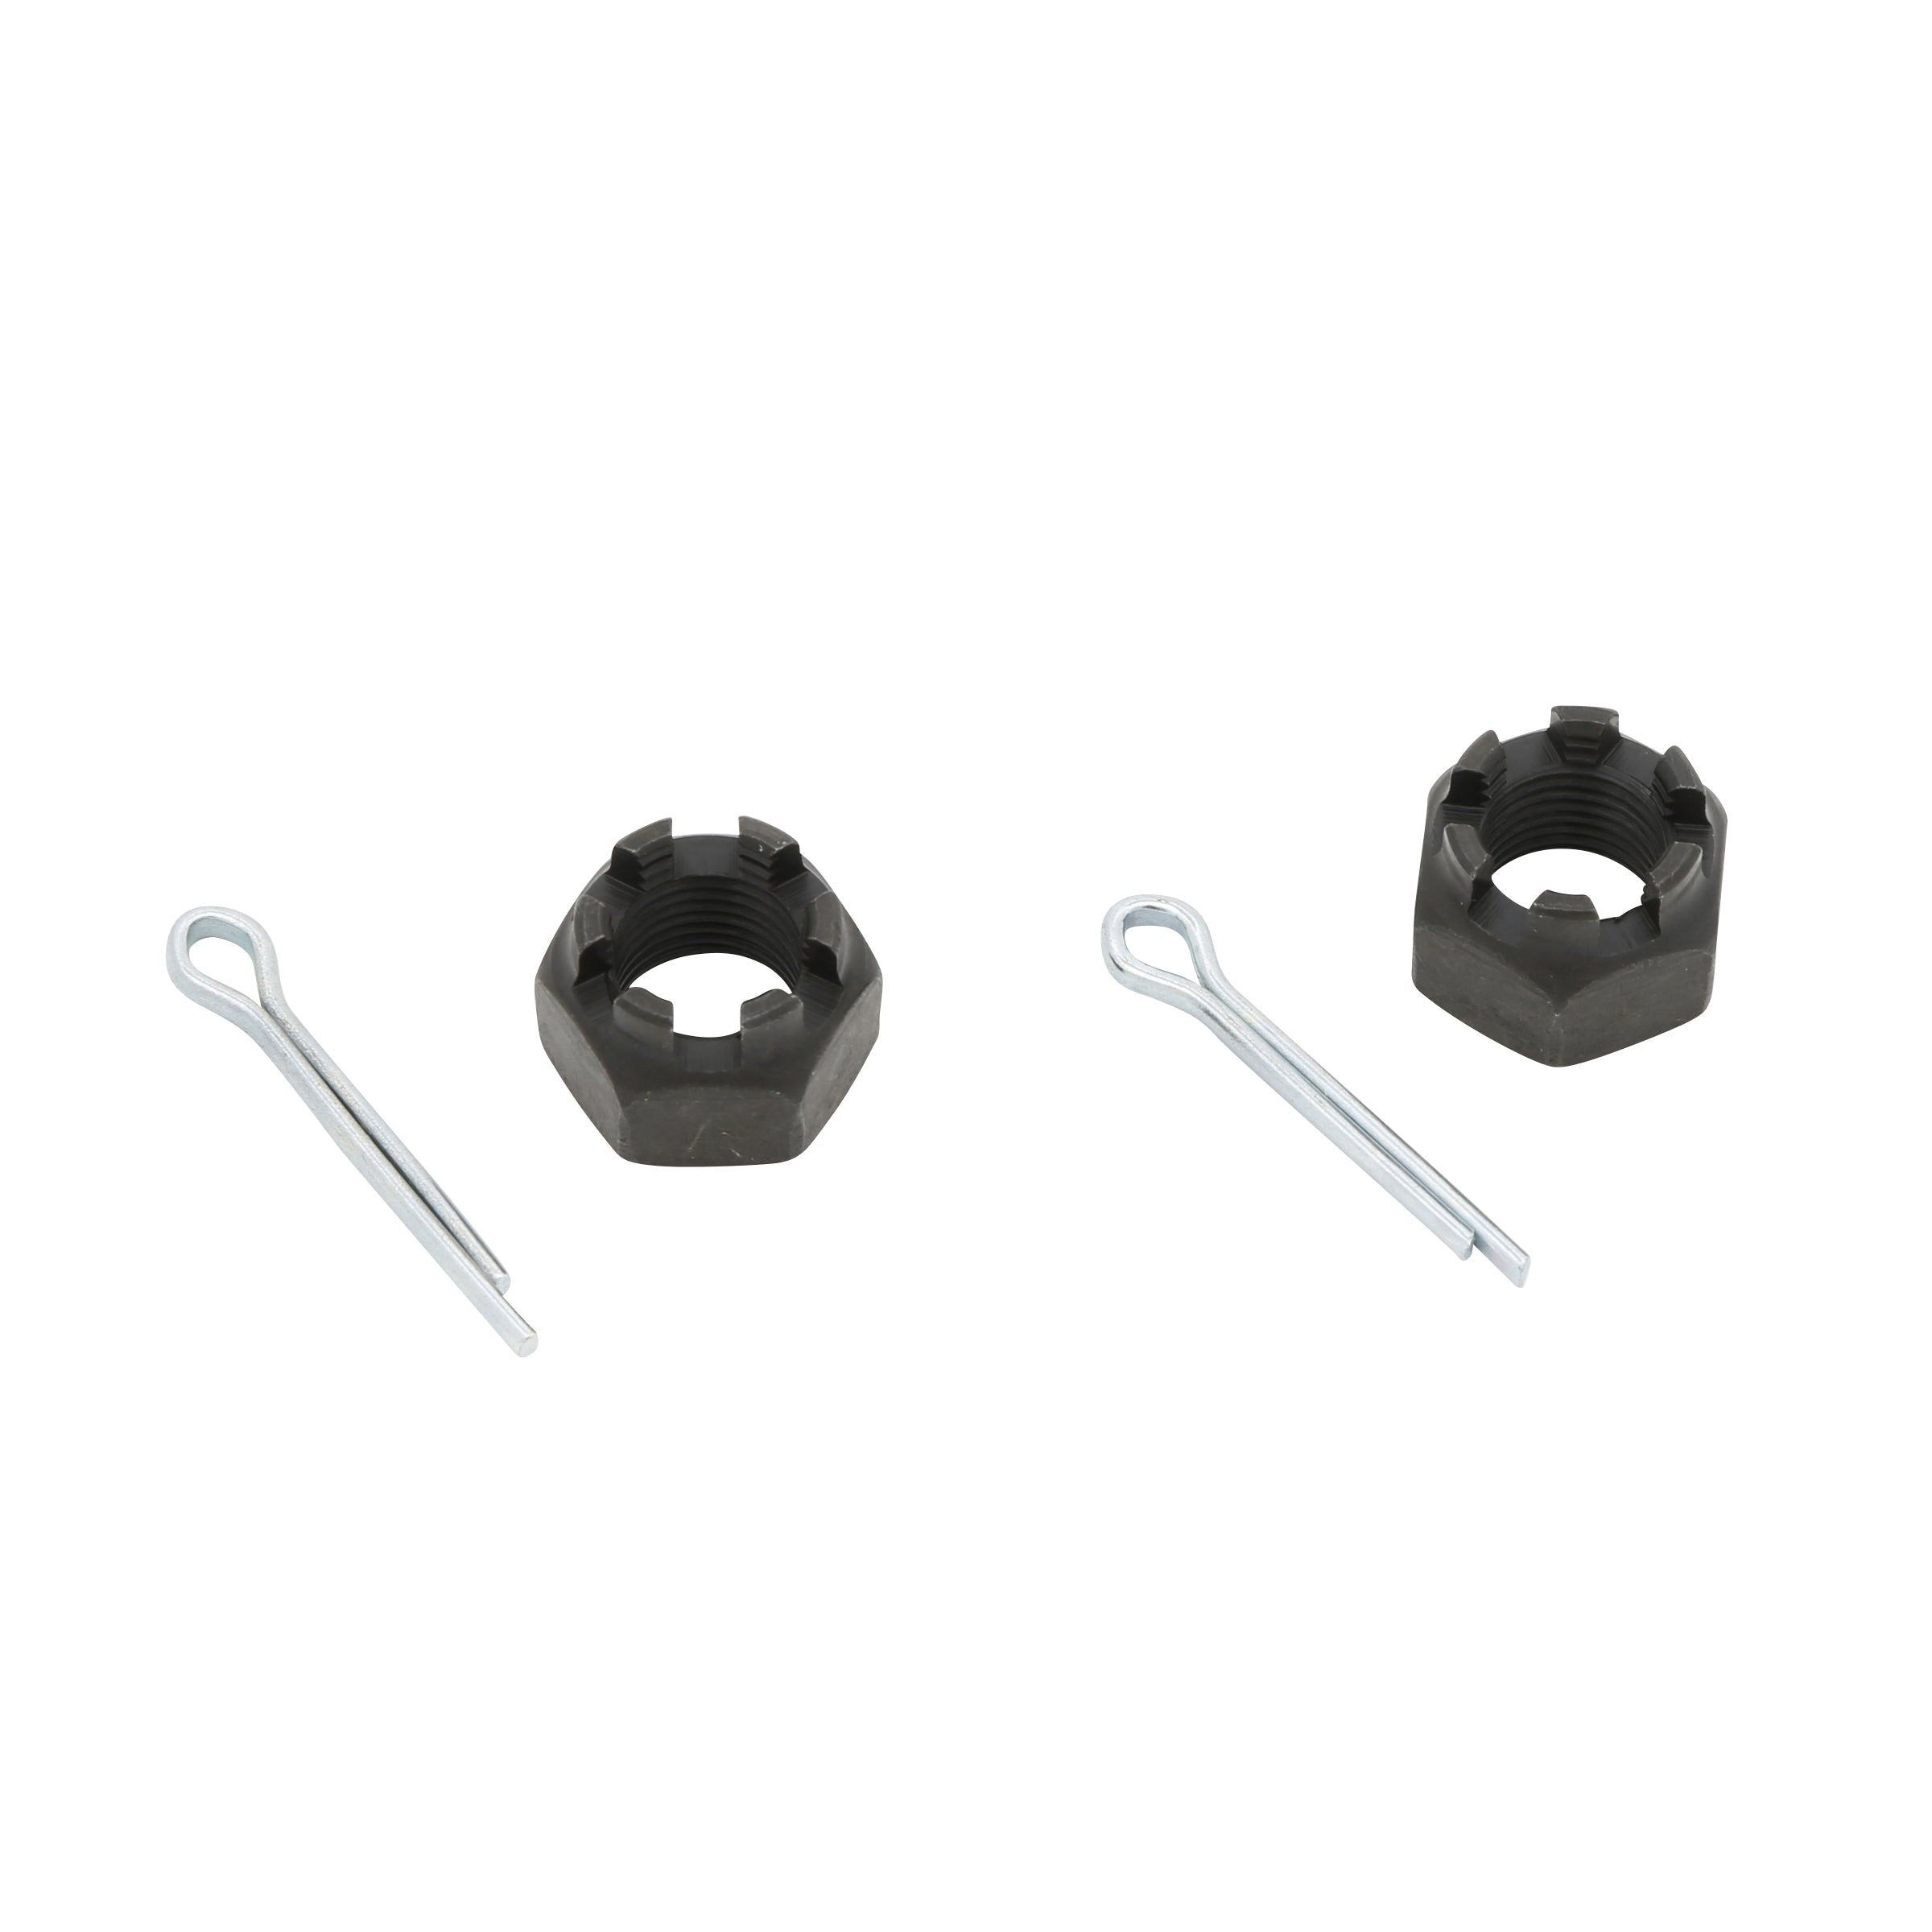 Wedge Stud Mount Set • 1928-31